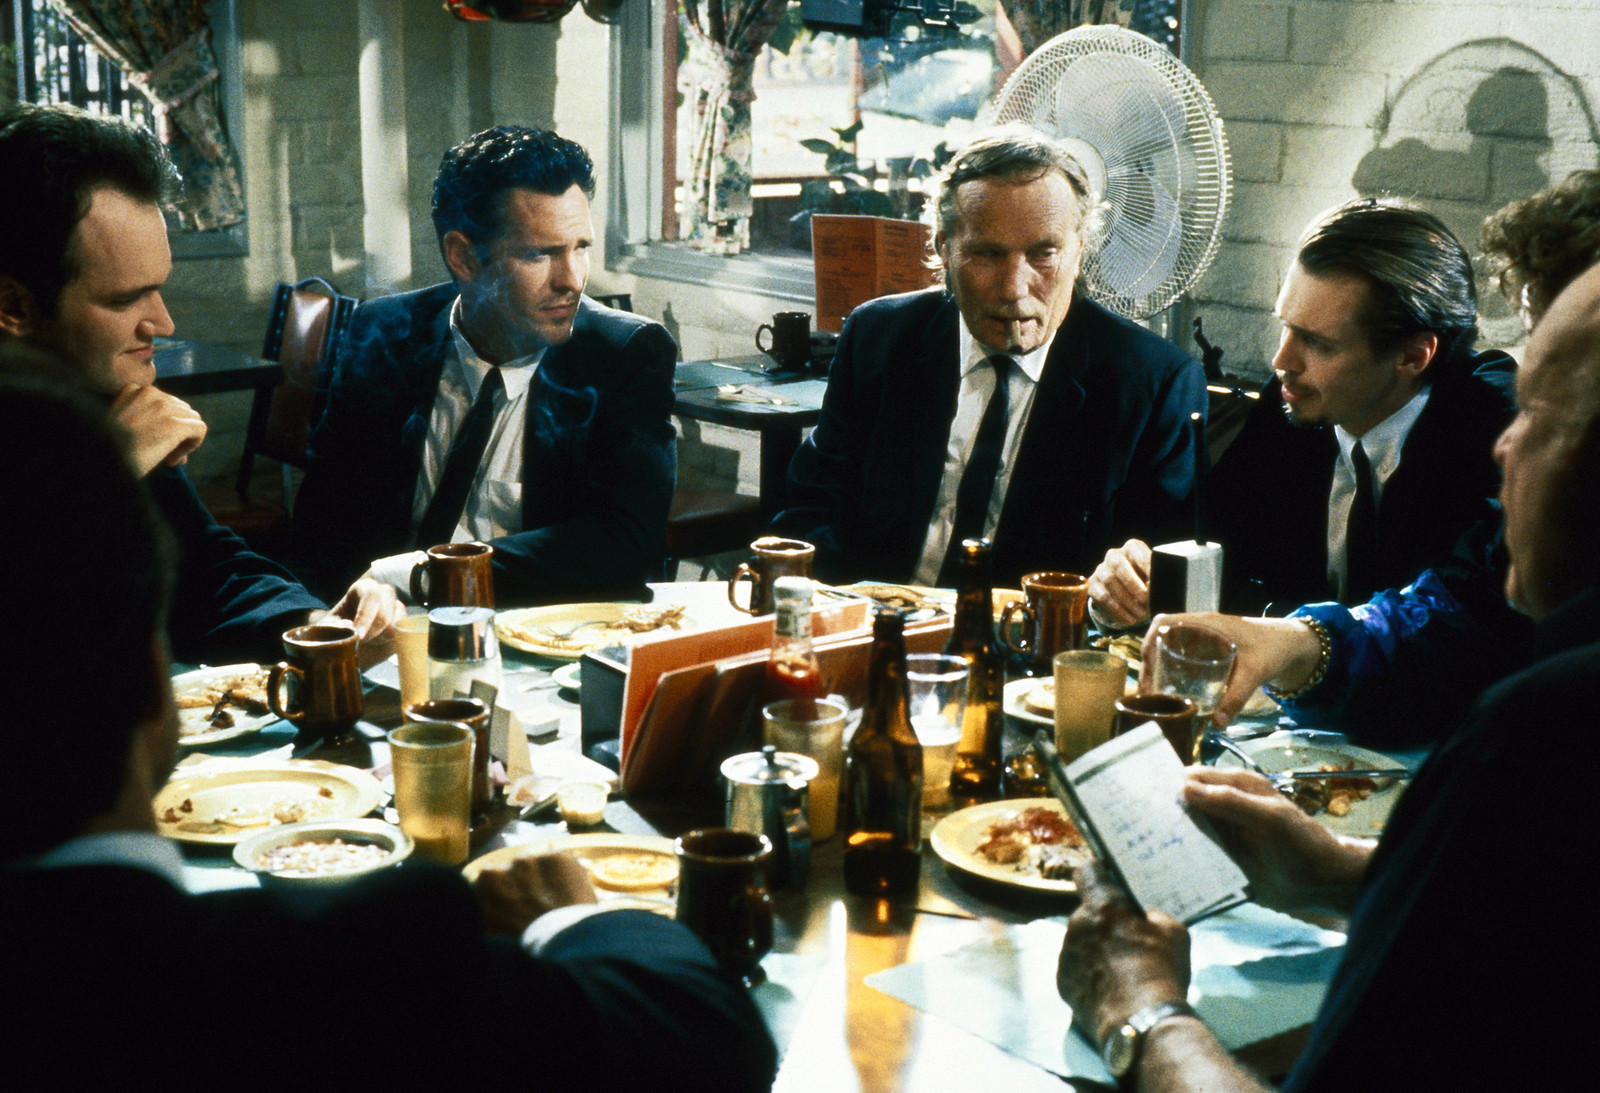 Steve Buscemi, Quentin Tarantino, Michael Madsen, Edward Bunker, and Lawrence Tierney in Reservoir Dogs (1992)